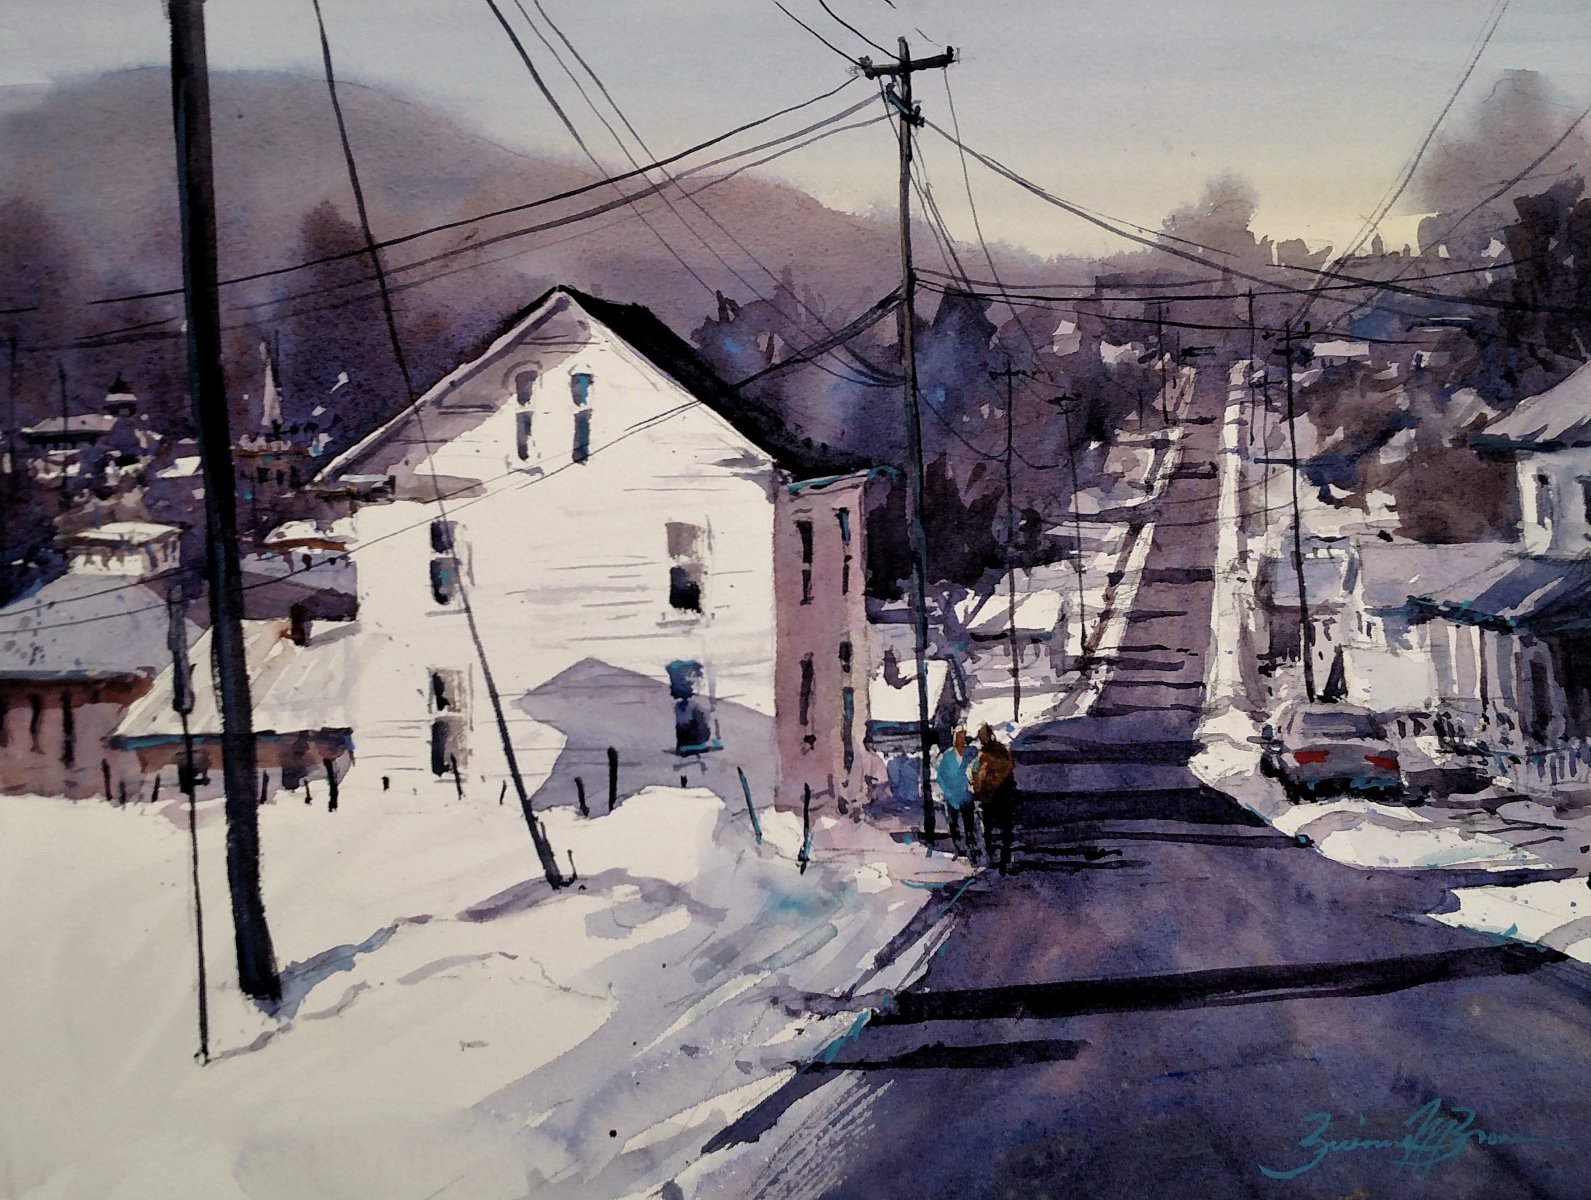 Bellefonte Winter - Brienne M Brown